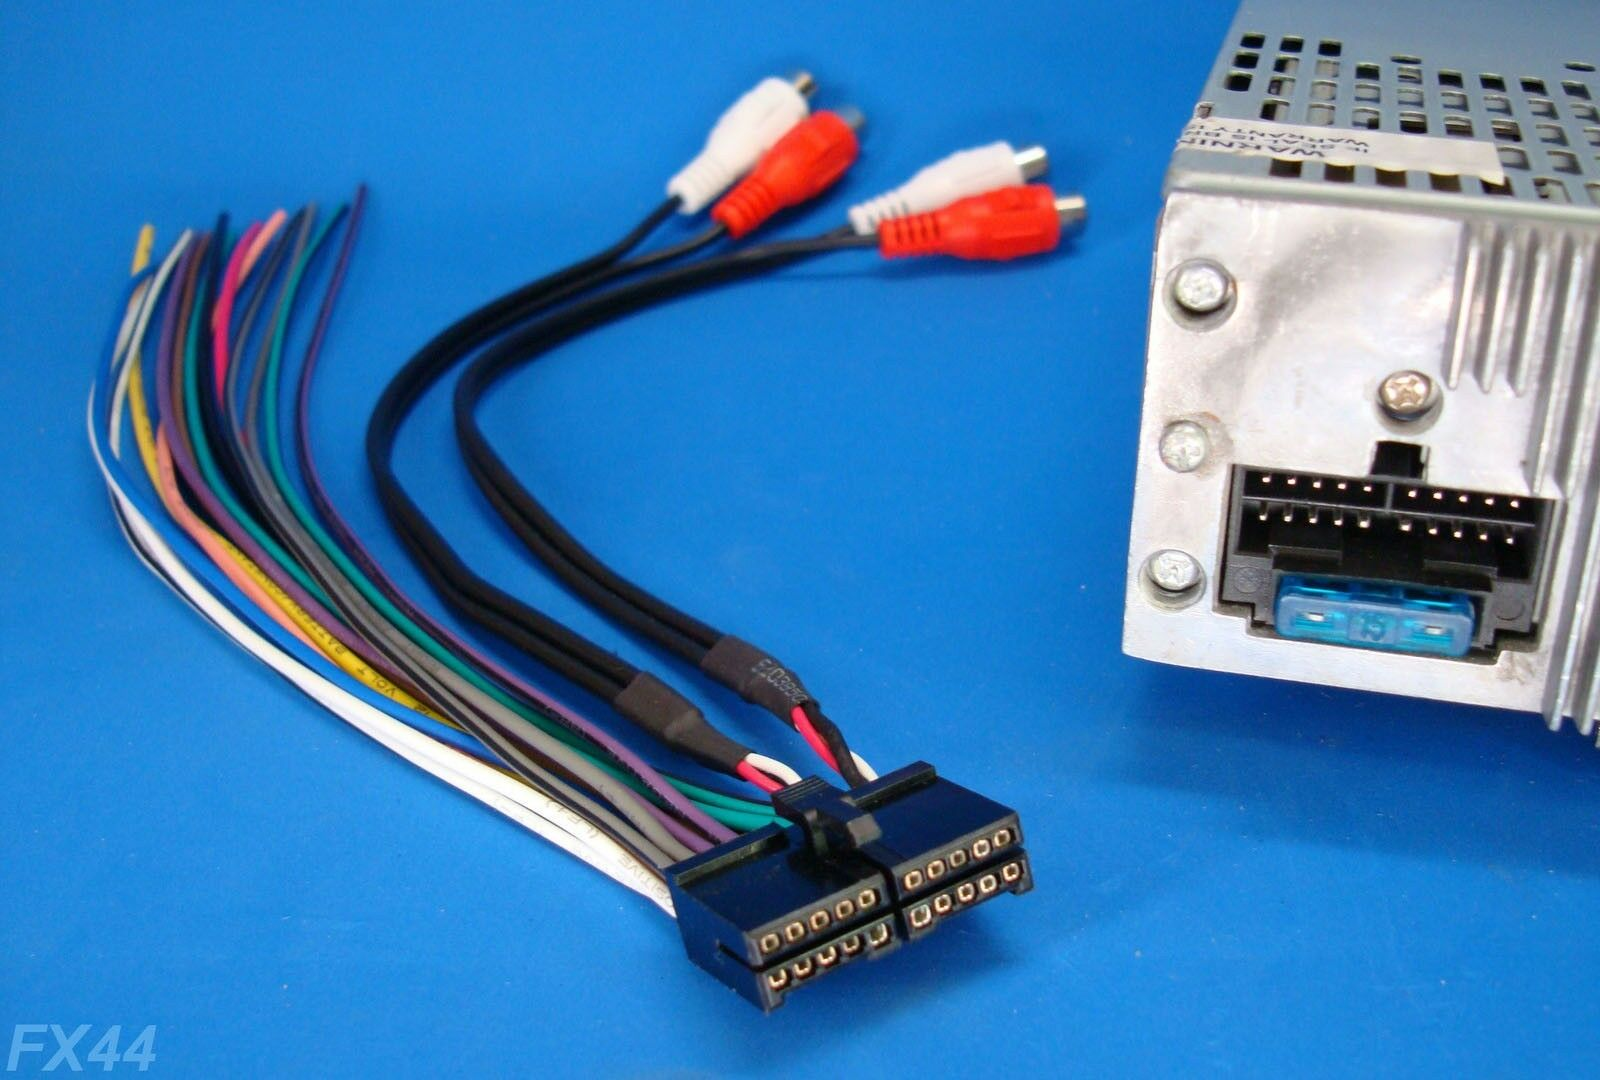 s l1600 xo vision 20 pin radio wire harness stereo power plug back clip xod1752bt wiring harness at soozxer.org